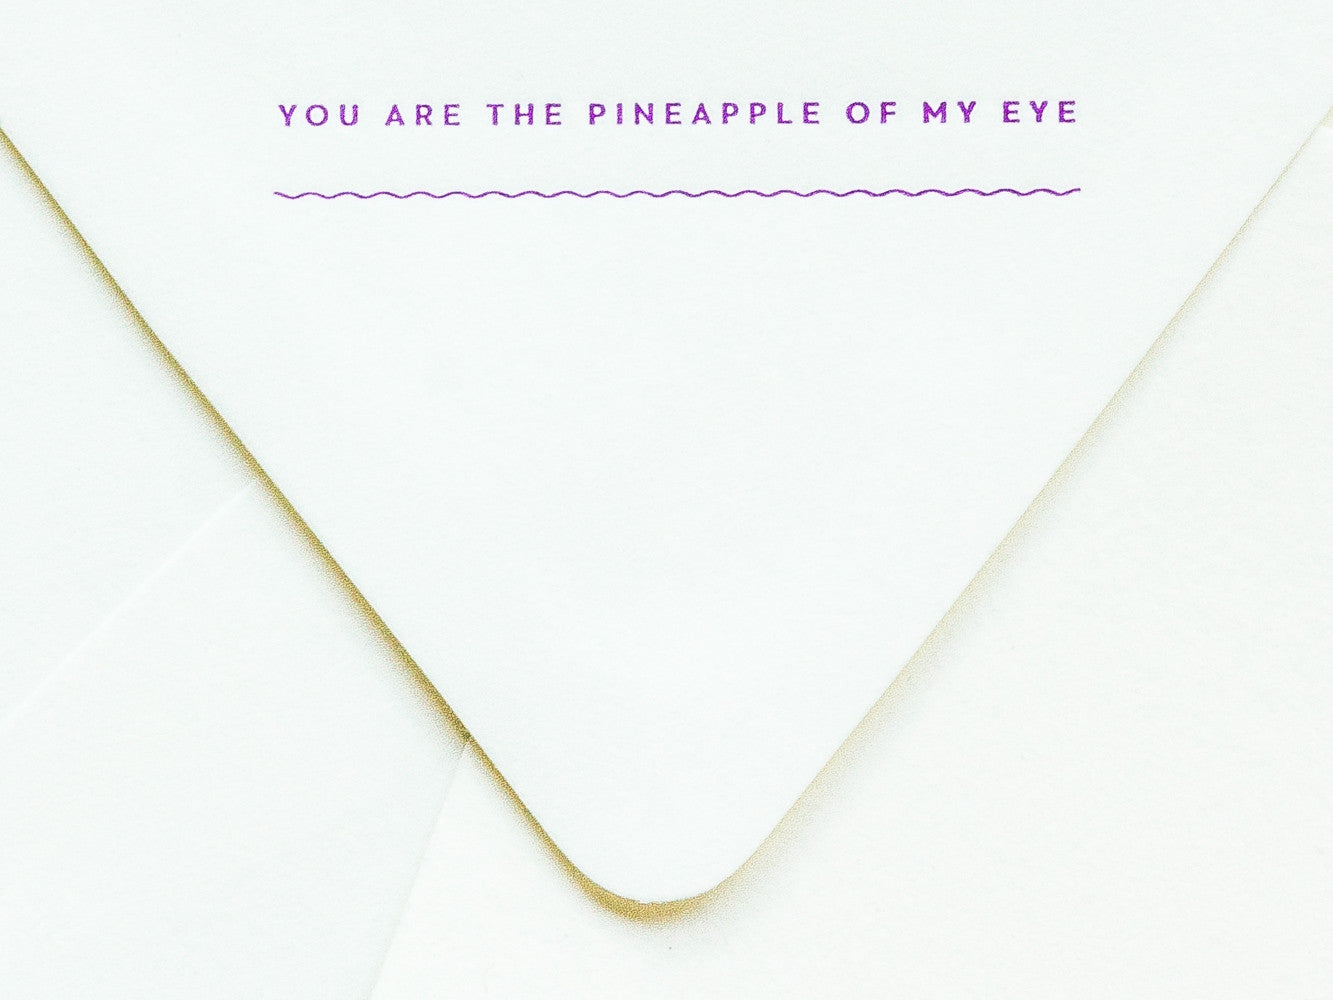 You Are the Pineapple of My Eye Notevelope & Pineapple Notecard